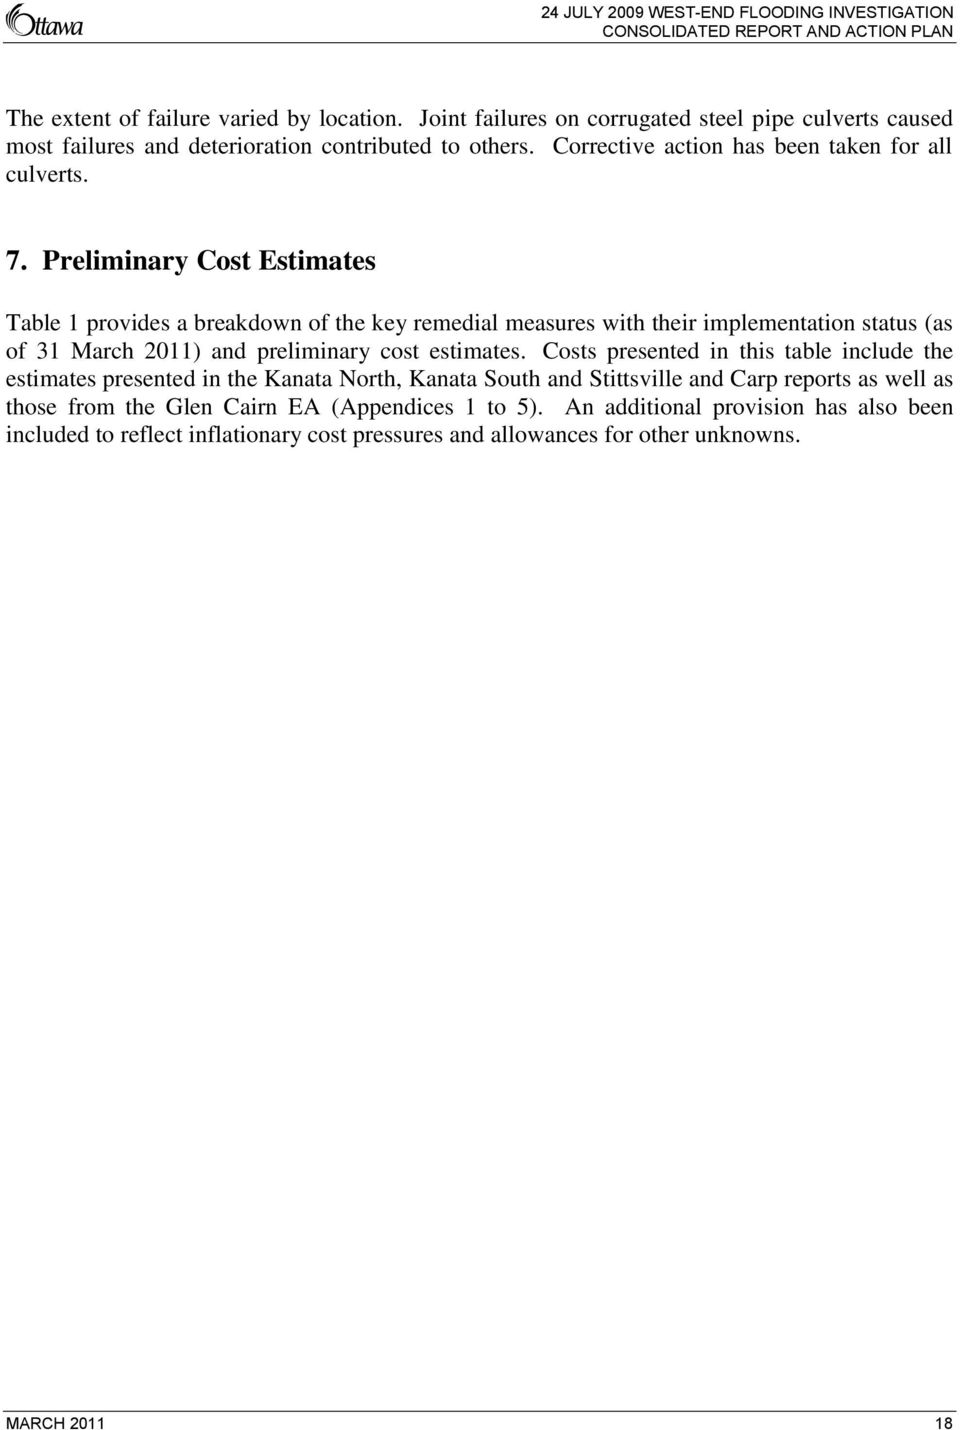 Preliminary Cost Estimates Table 1 provides a breakdown of the key remedial measures with their implementation status (as of 31 March 2011) and preliminary cost estimates.